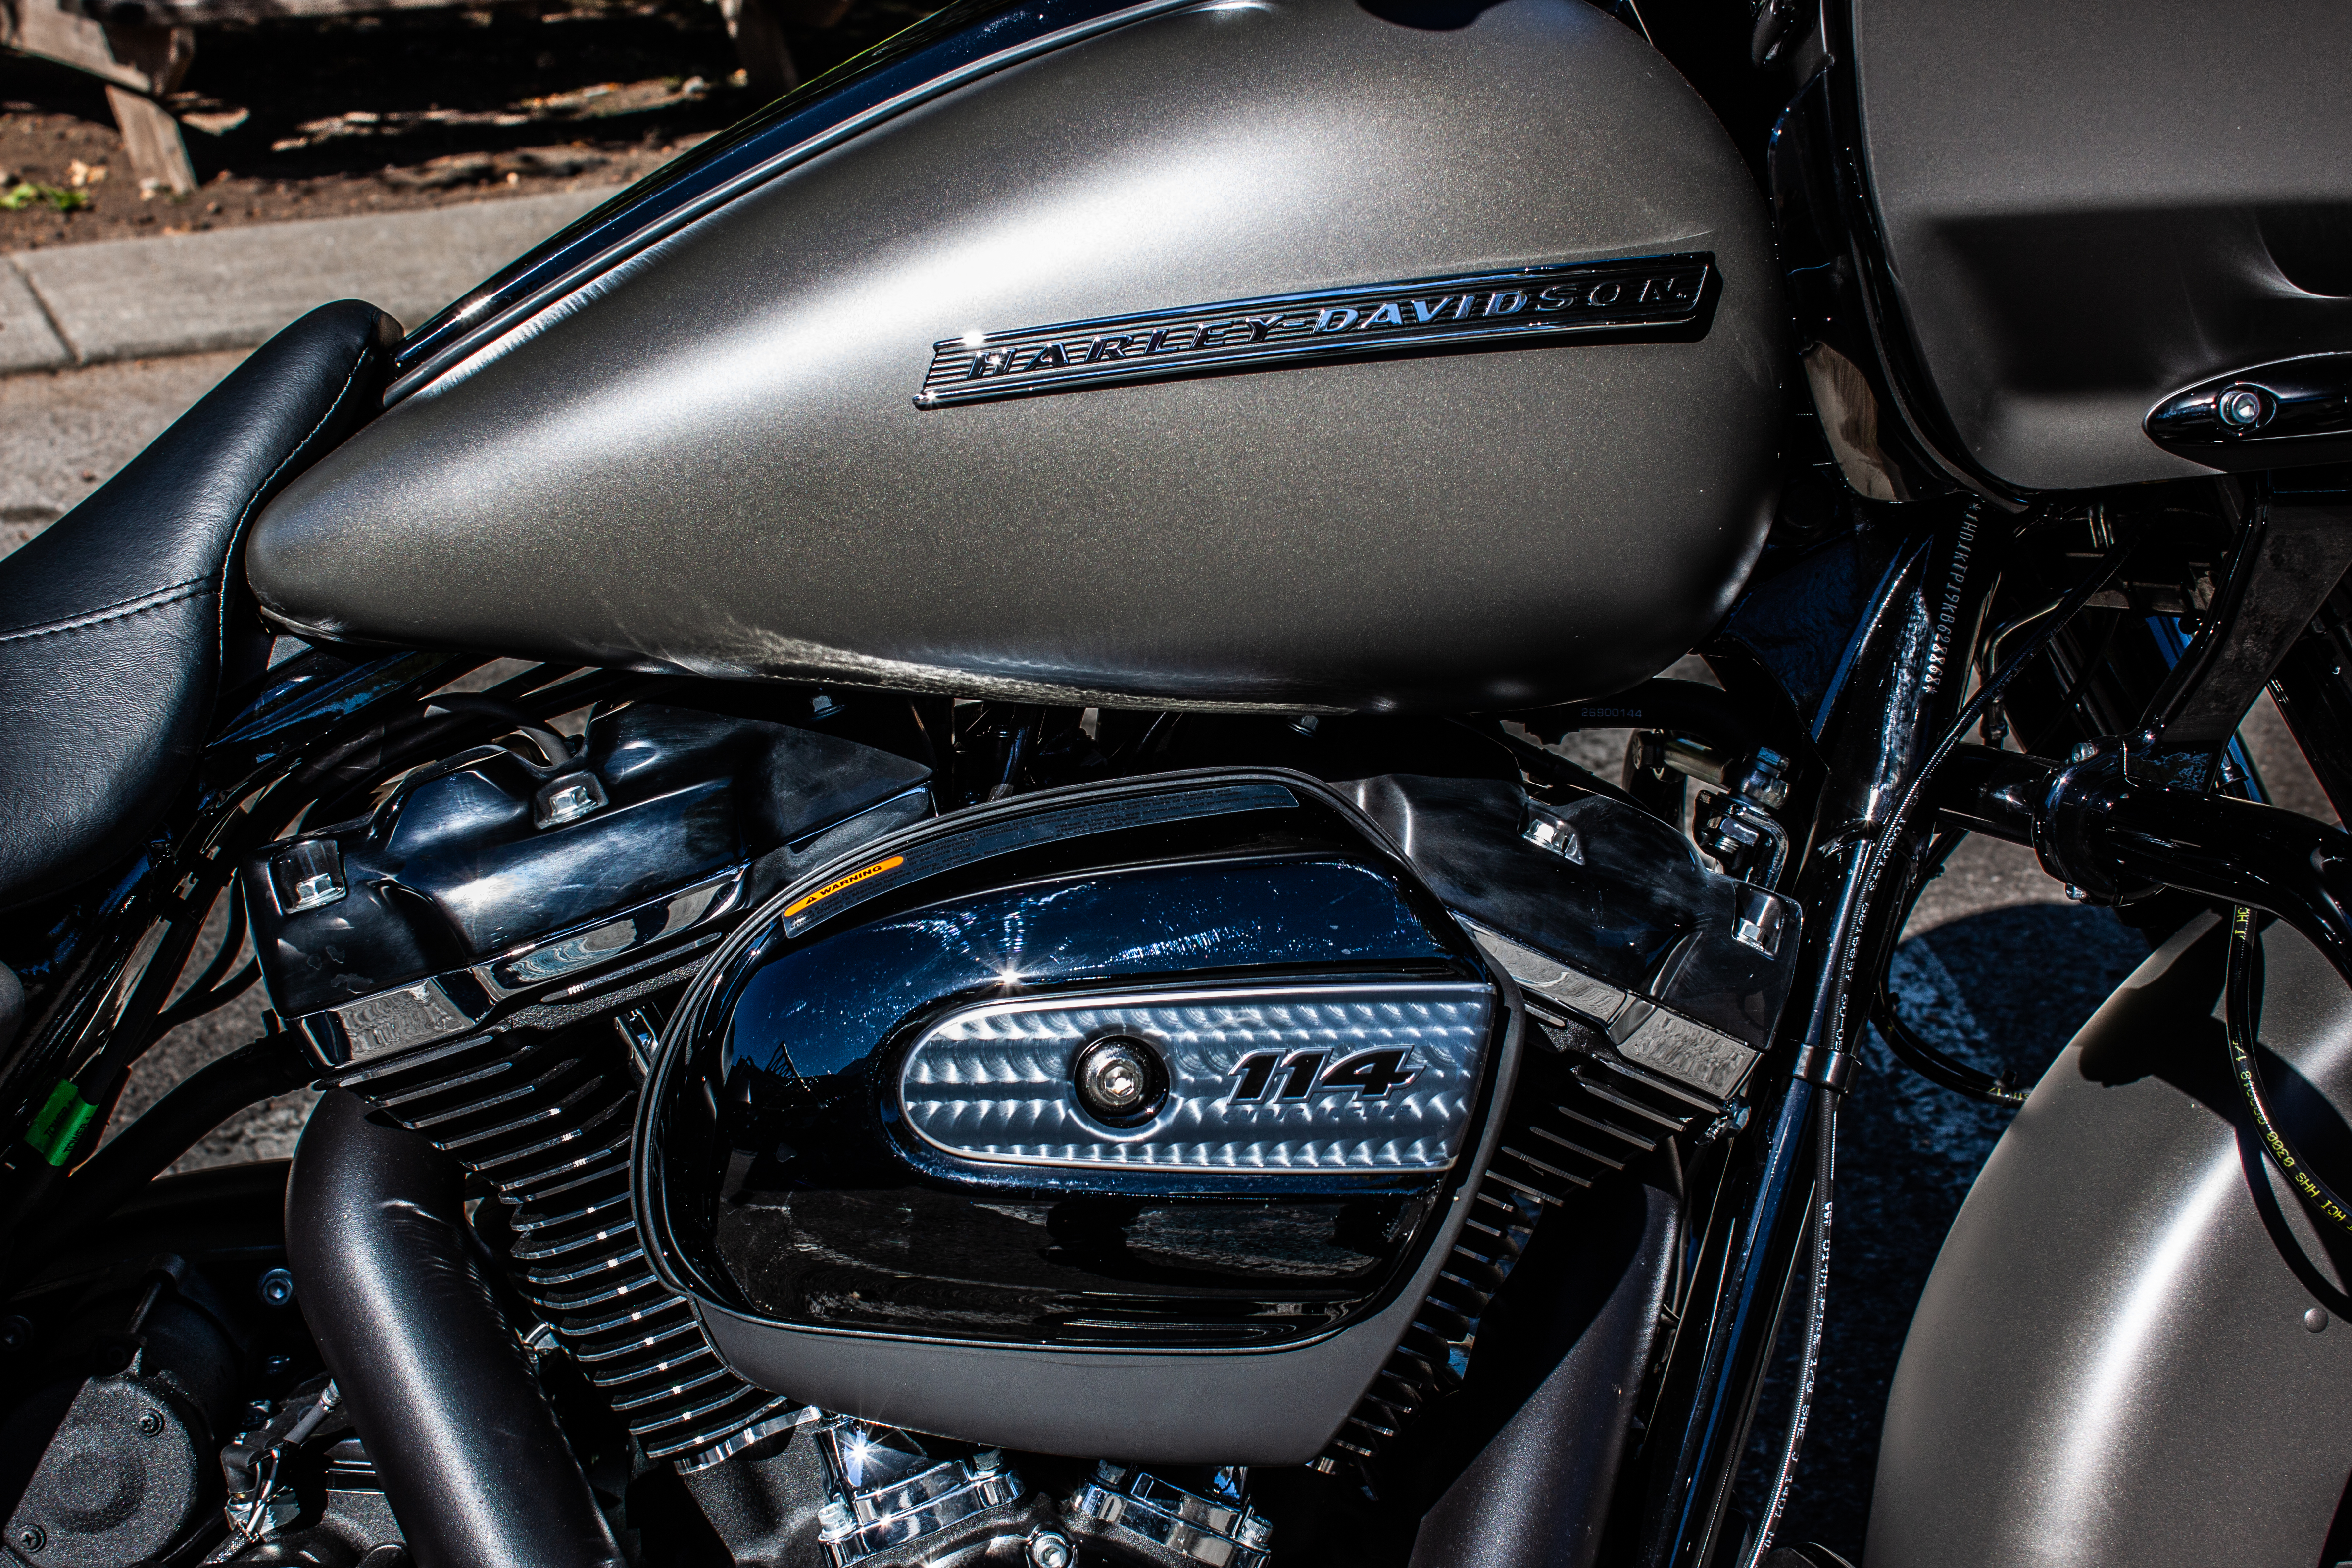 Pre-Owned 2019 Harley-Davidson Road Glide Special